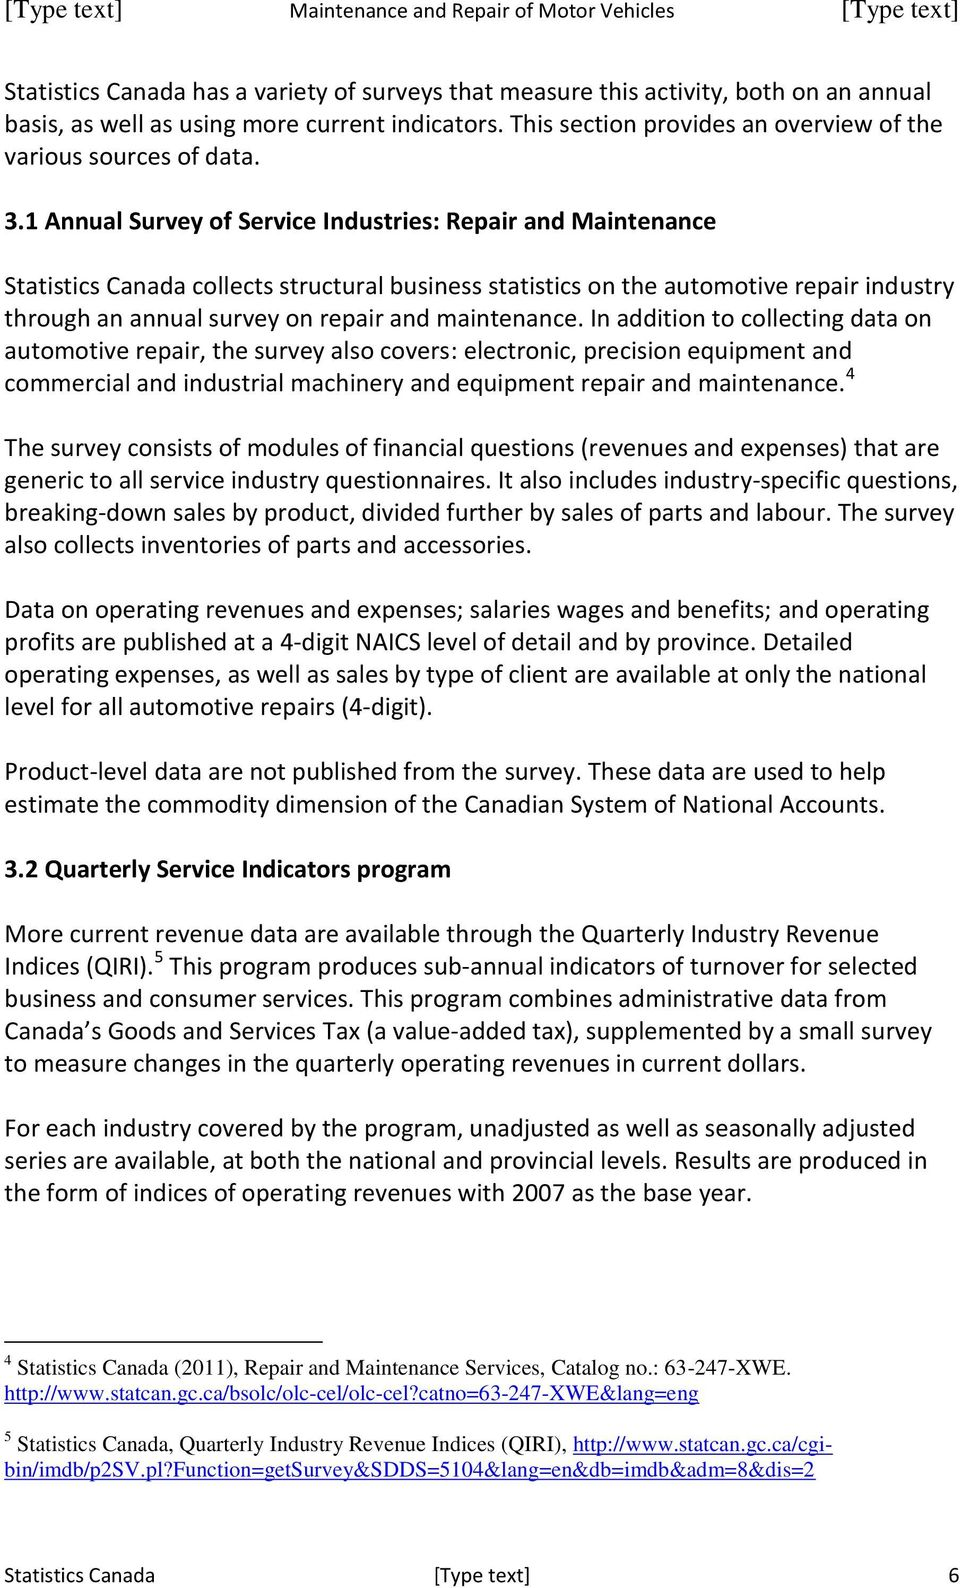 1 Annual Survey of Service Industries: Repair and Maintenance Statistics Canada collects structural business statistics on the automotive repair industry through an annual survey on repair and